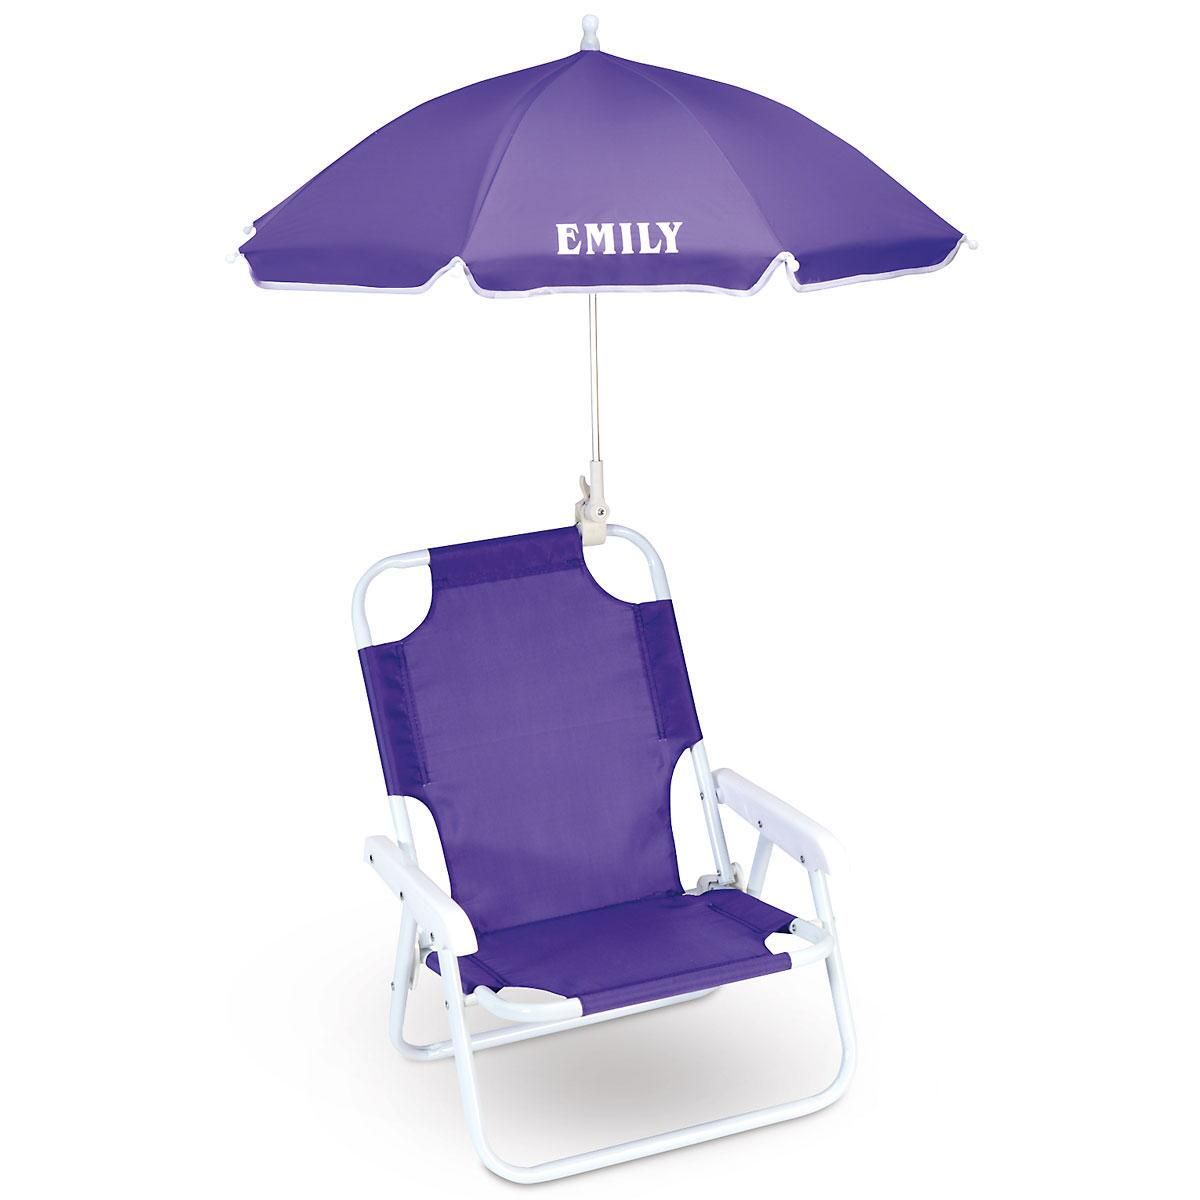 Clamp On Chair Umbrella Clip On Beach Chair Umbrellas The Best Beaches In The World